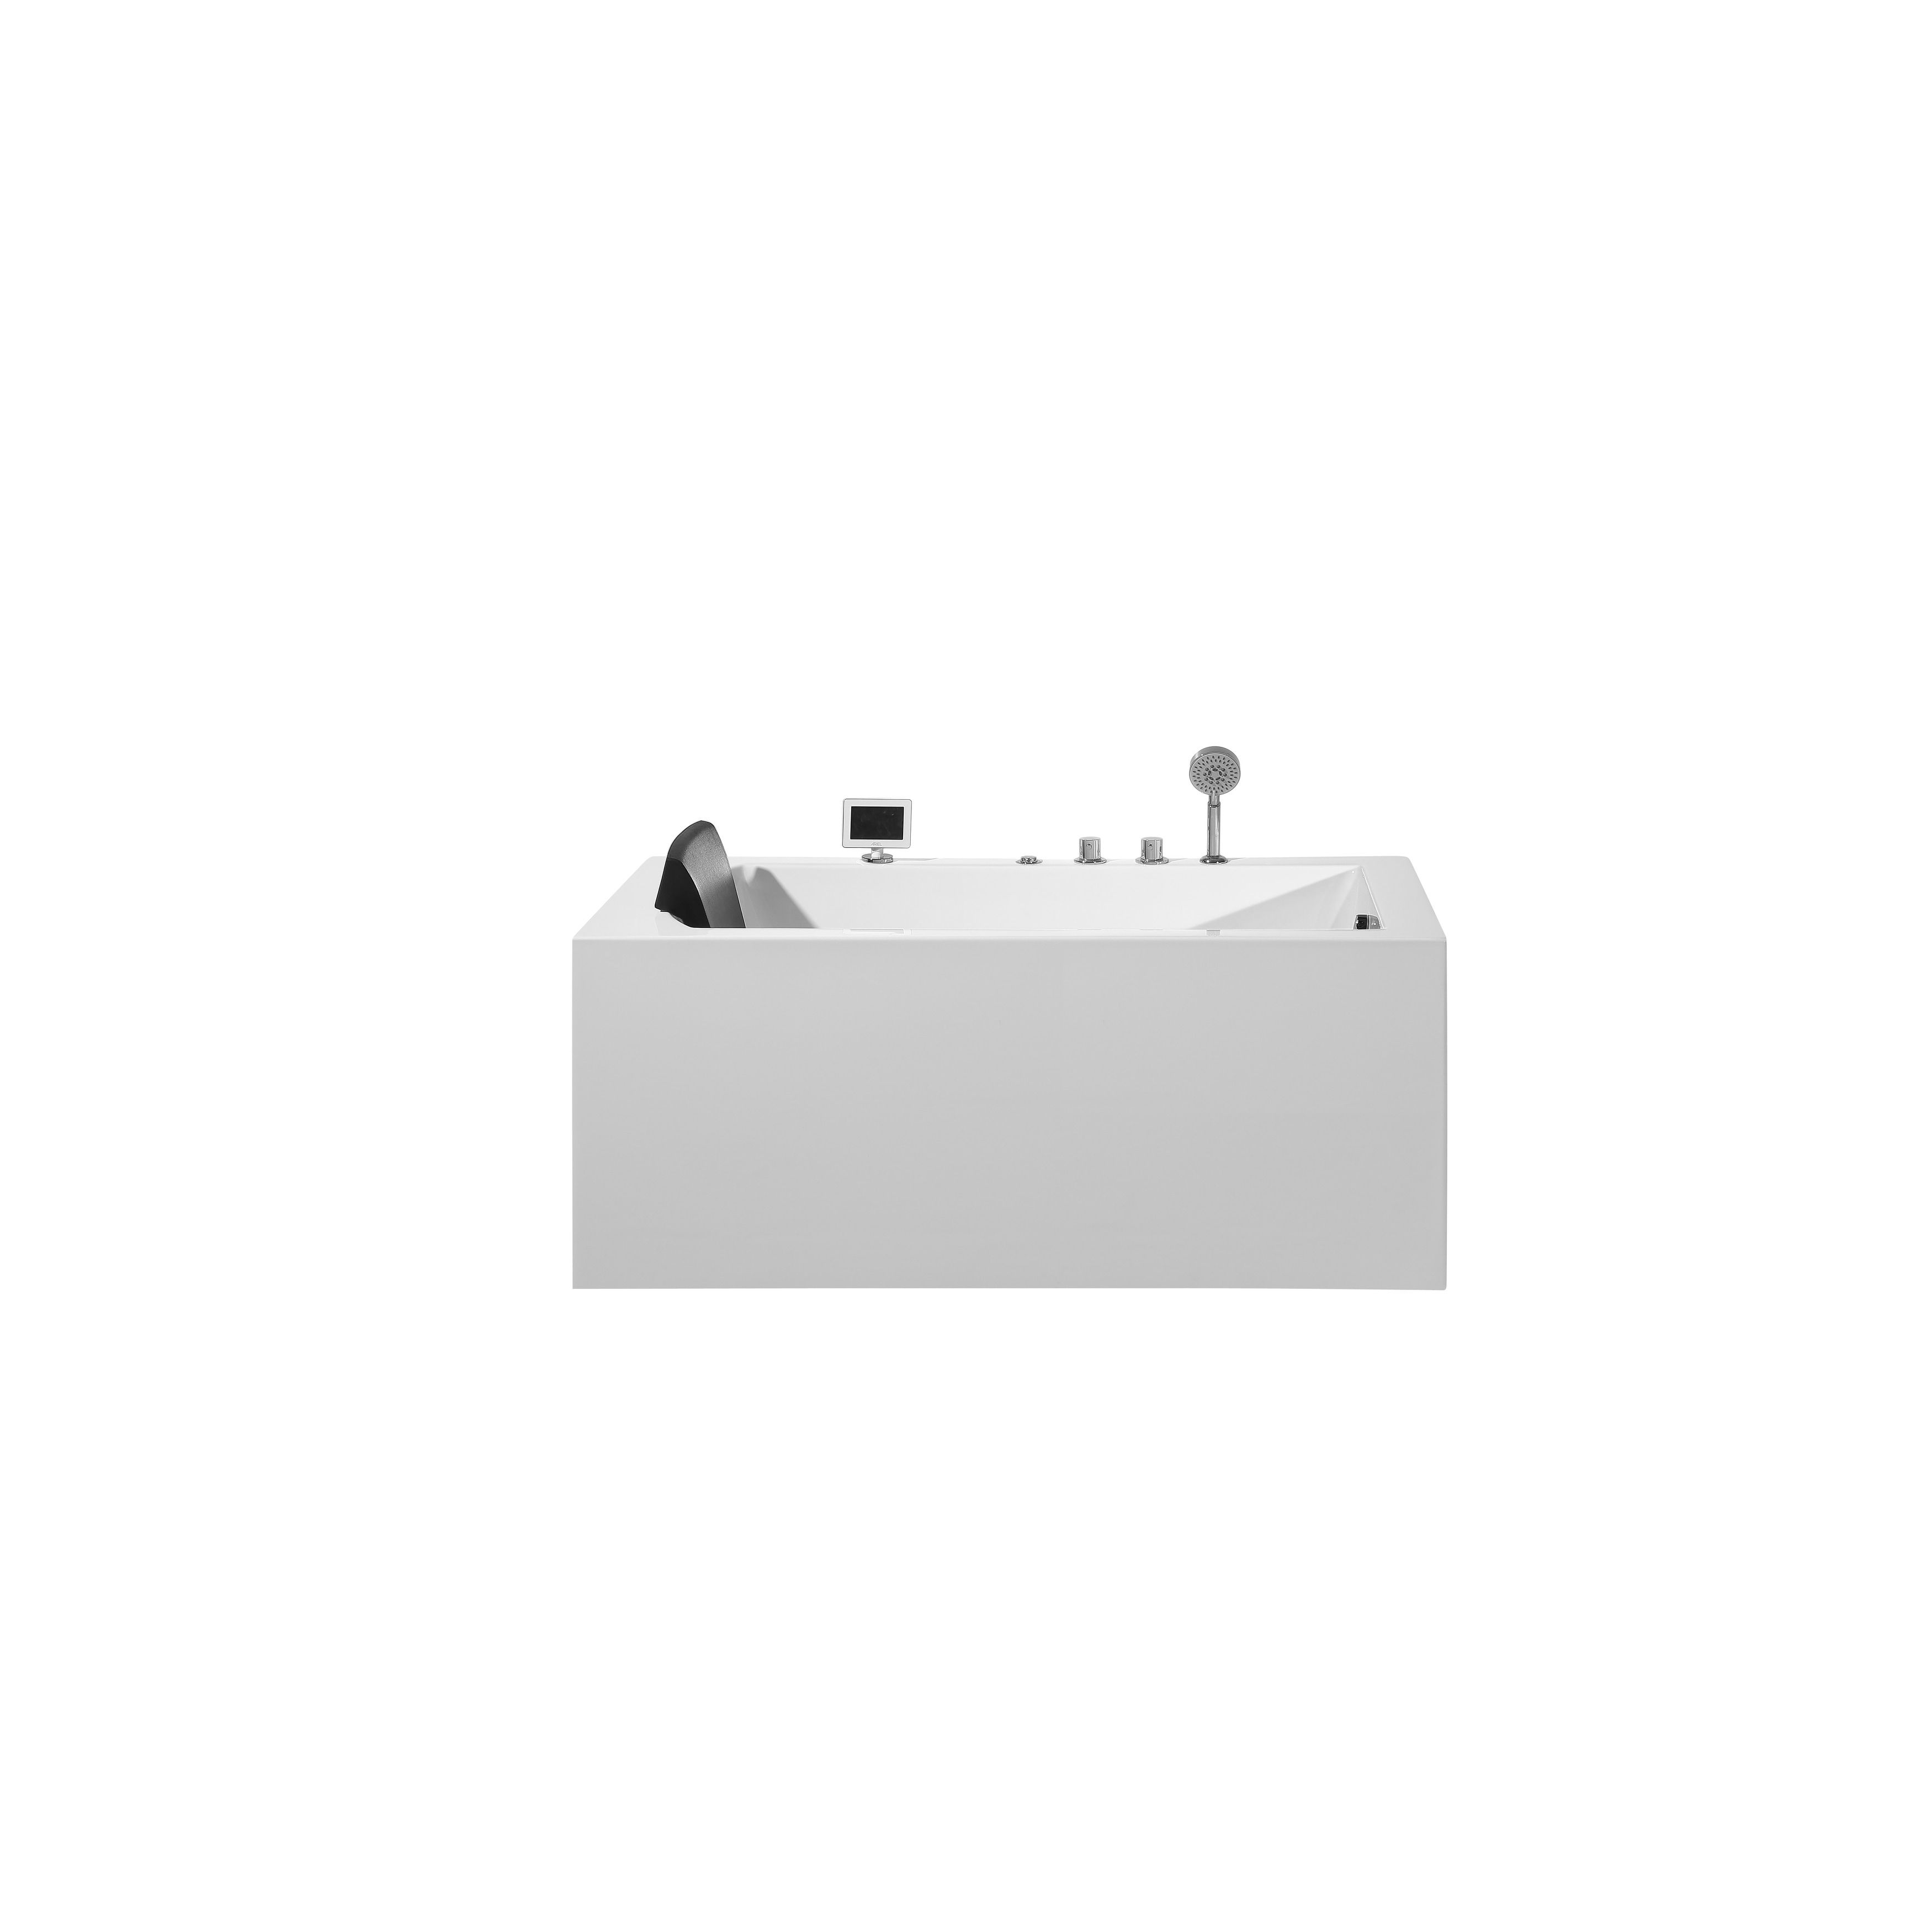 Ariel Platinum Pw1545930Rw1 Whirlpool Bathtub - Free Shipping Today ...